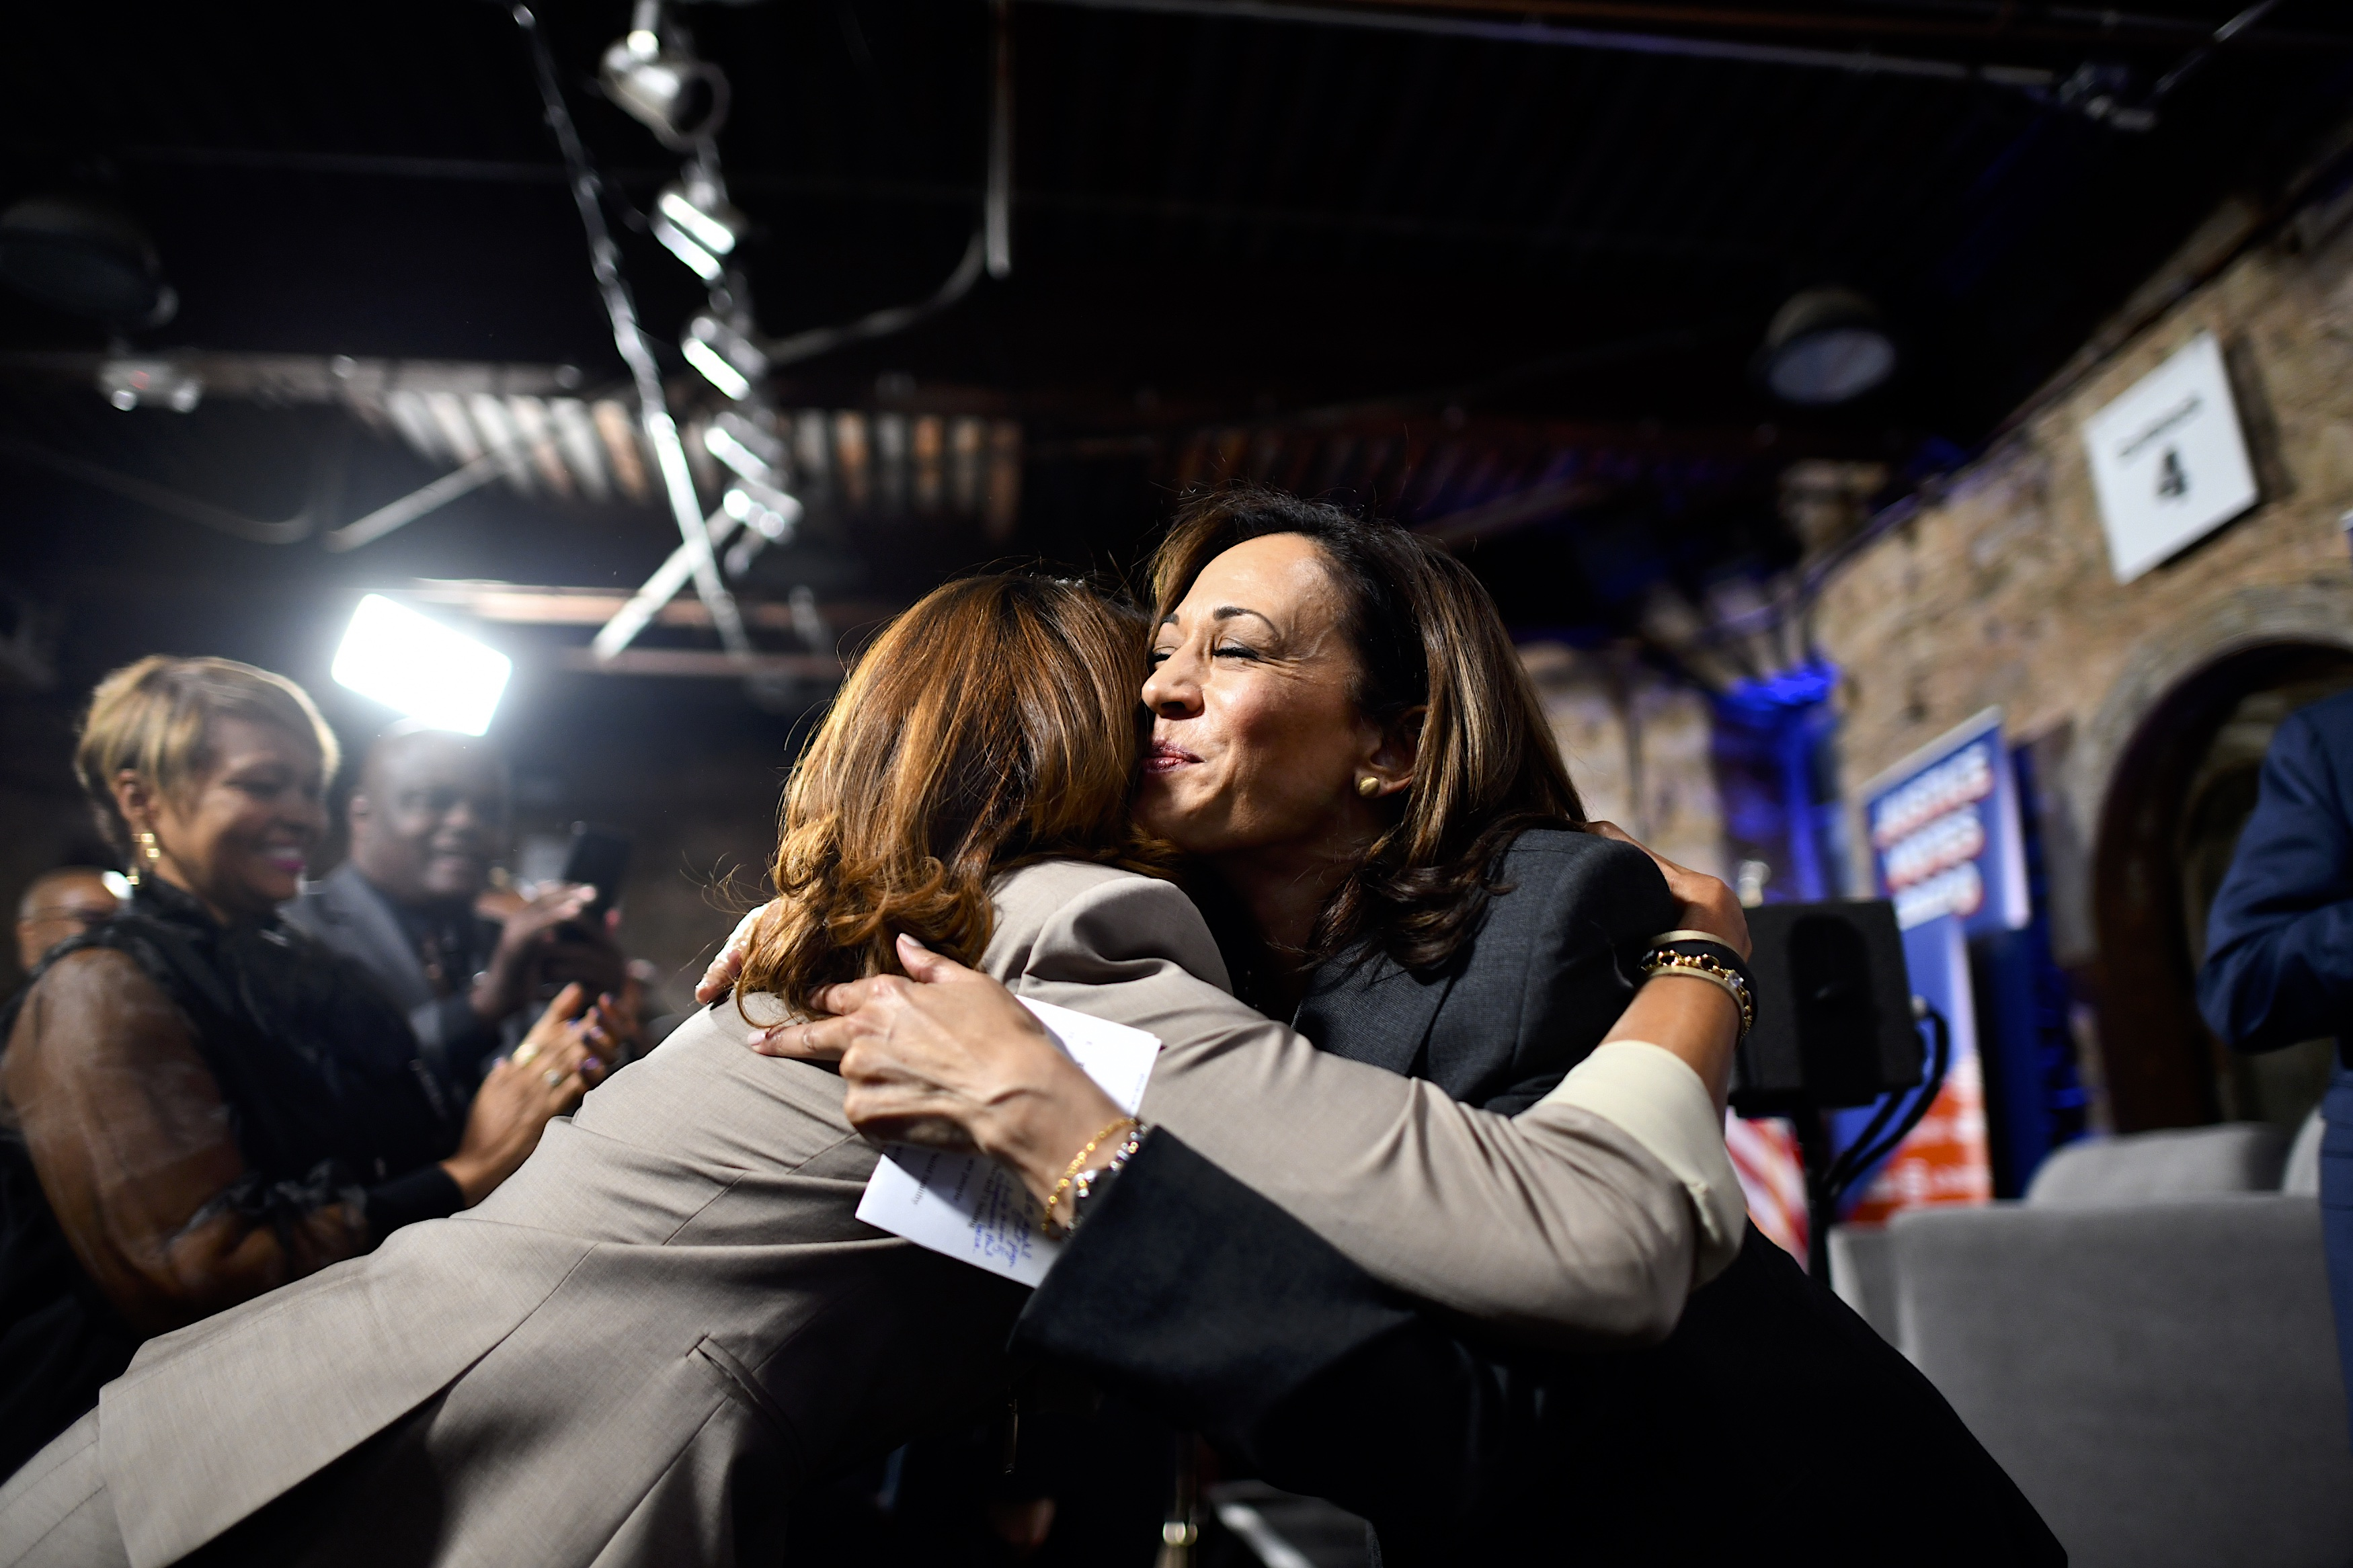 PHILADELPHIA, PA - OCTOBER 28: Democratic Presidential candidate, U.S. Senator Kamala Harris (D-CA) greets supporters following a town hall at the Eastern State Penitentiary on October 28, 2019 in Philadelphia, Pennsylvania. Formerly incarcerated individuals, their families, and others involved with the criminal justice system hosted the town hall with three 2020 Democratic presidential candidates. (Photo by Mark Makela/Getty Images)